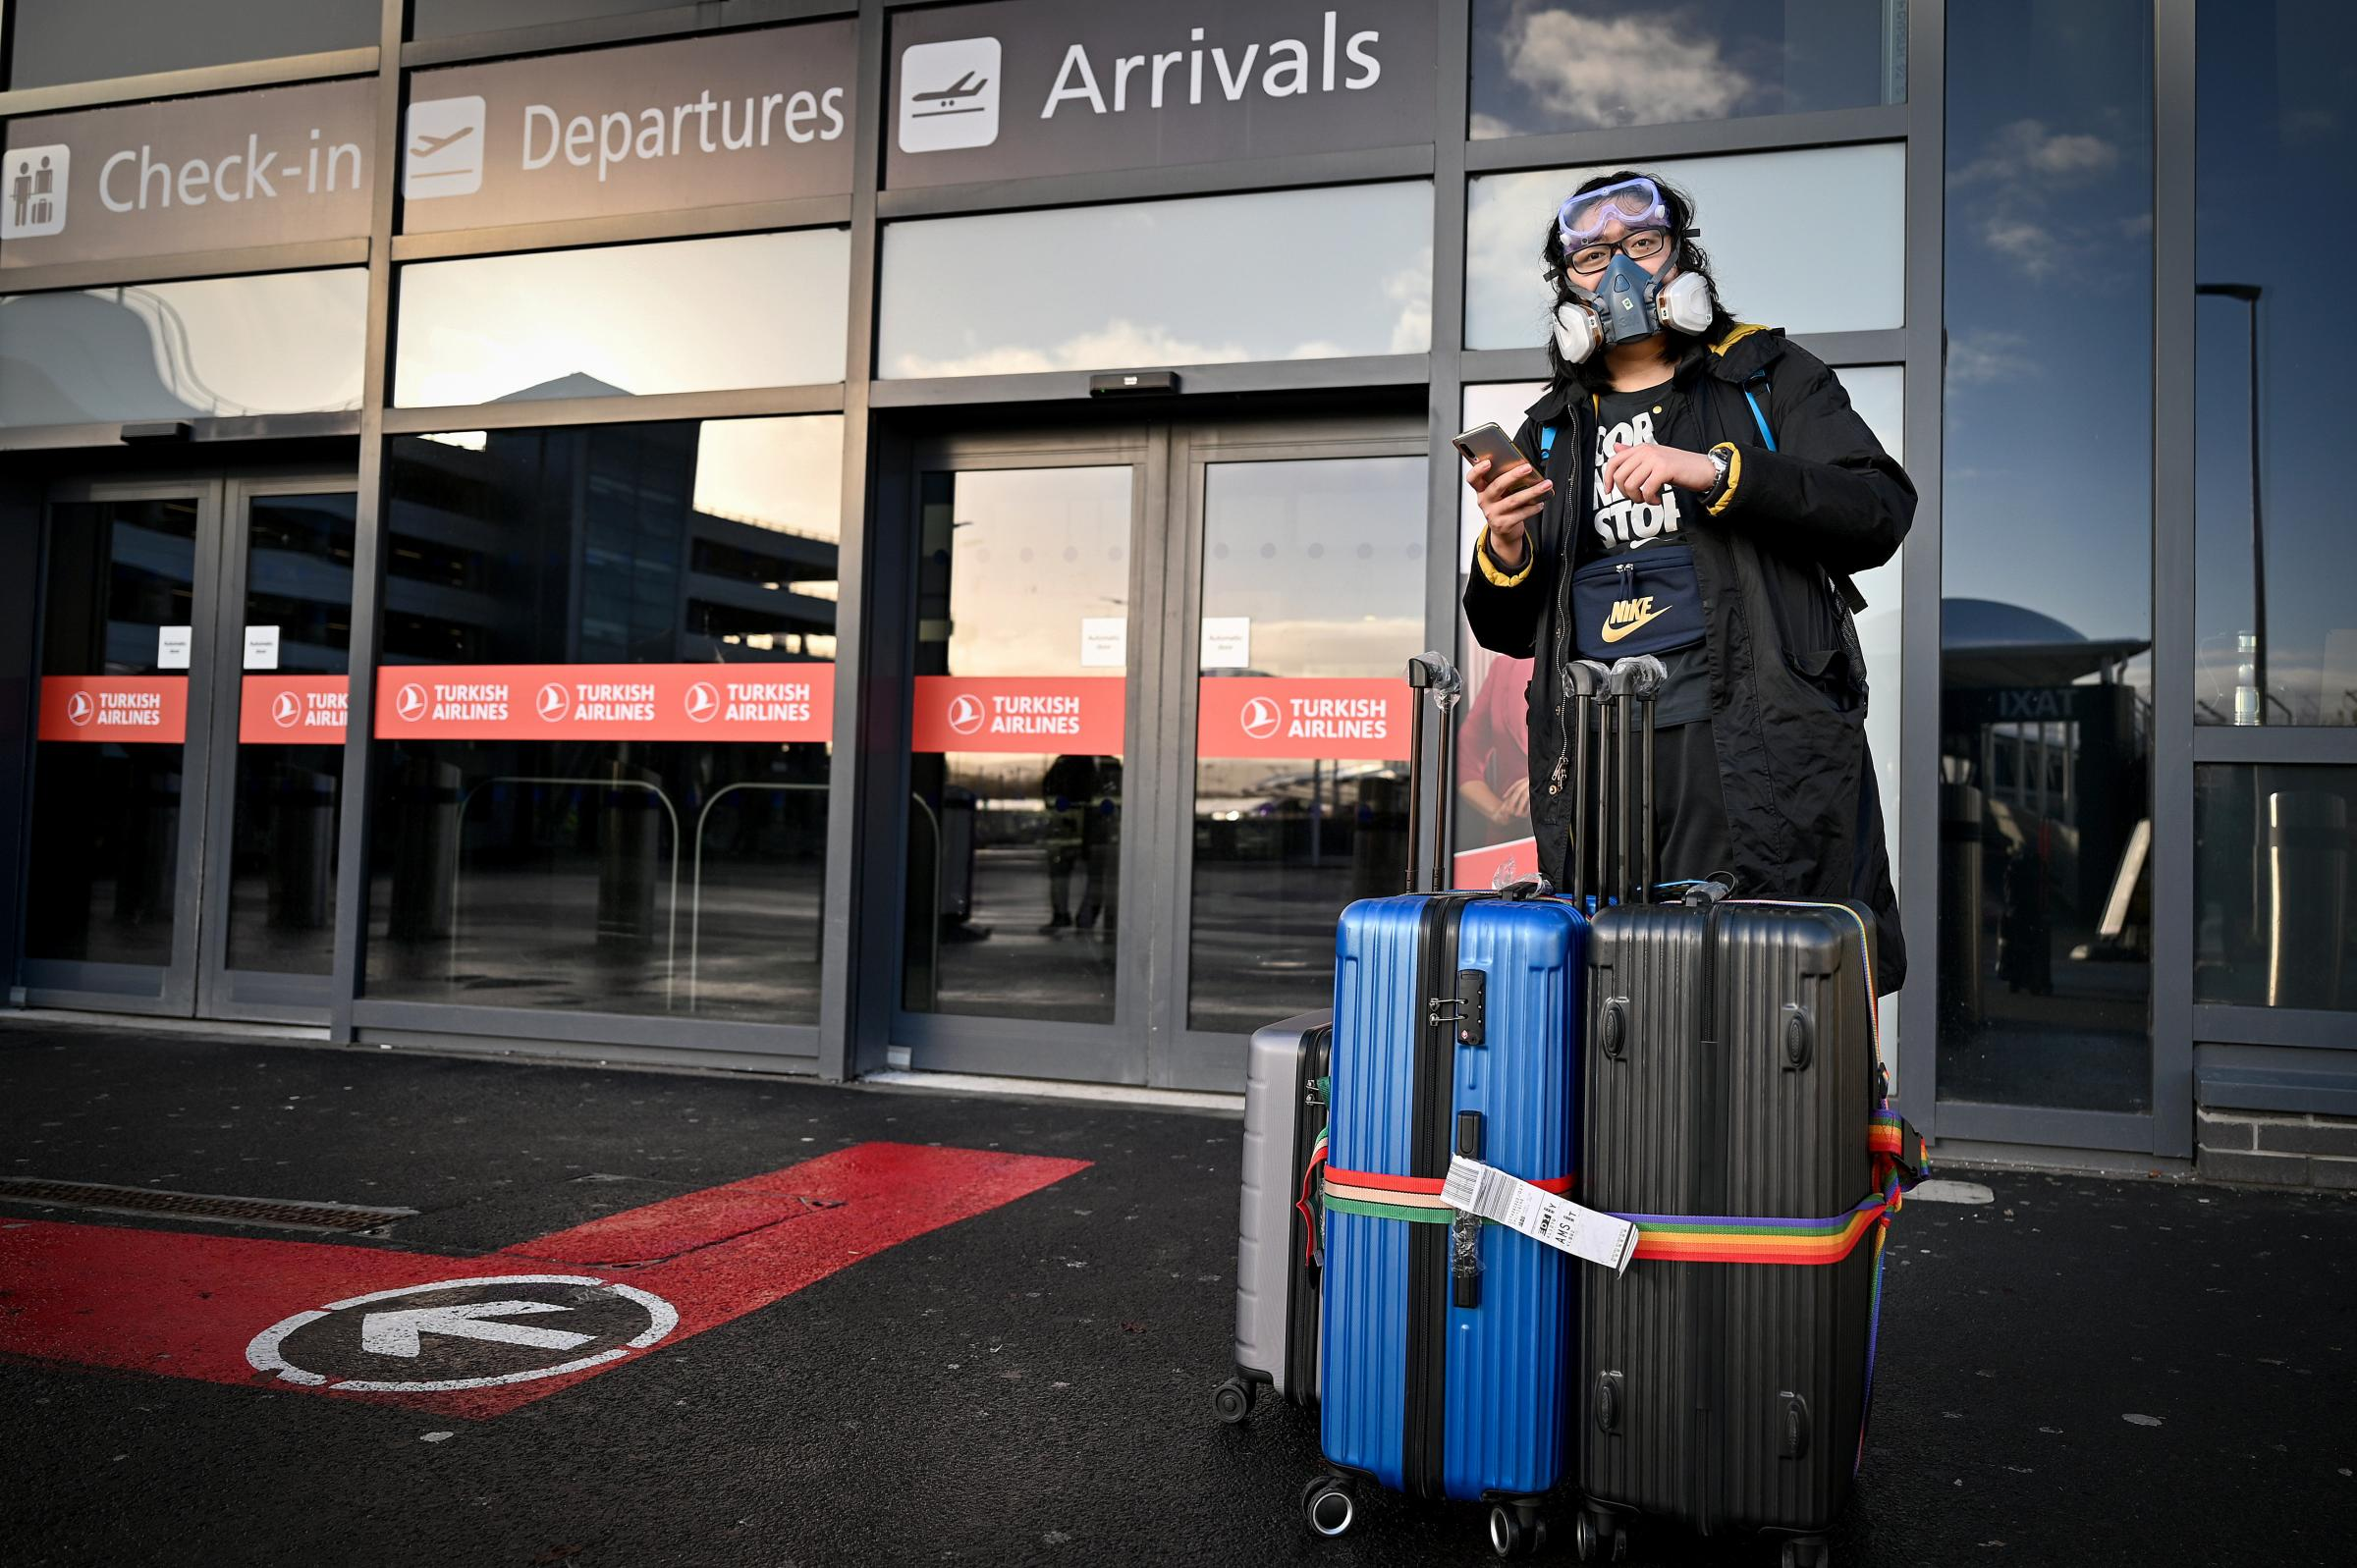 Travel restrictions lifting won't mean much to those hardest hit by Covid